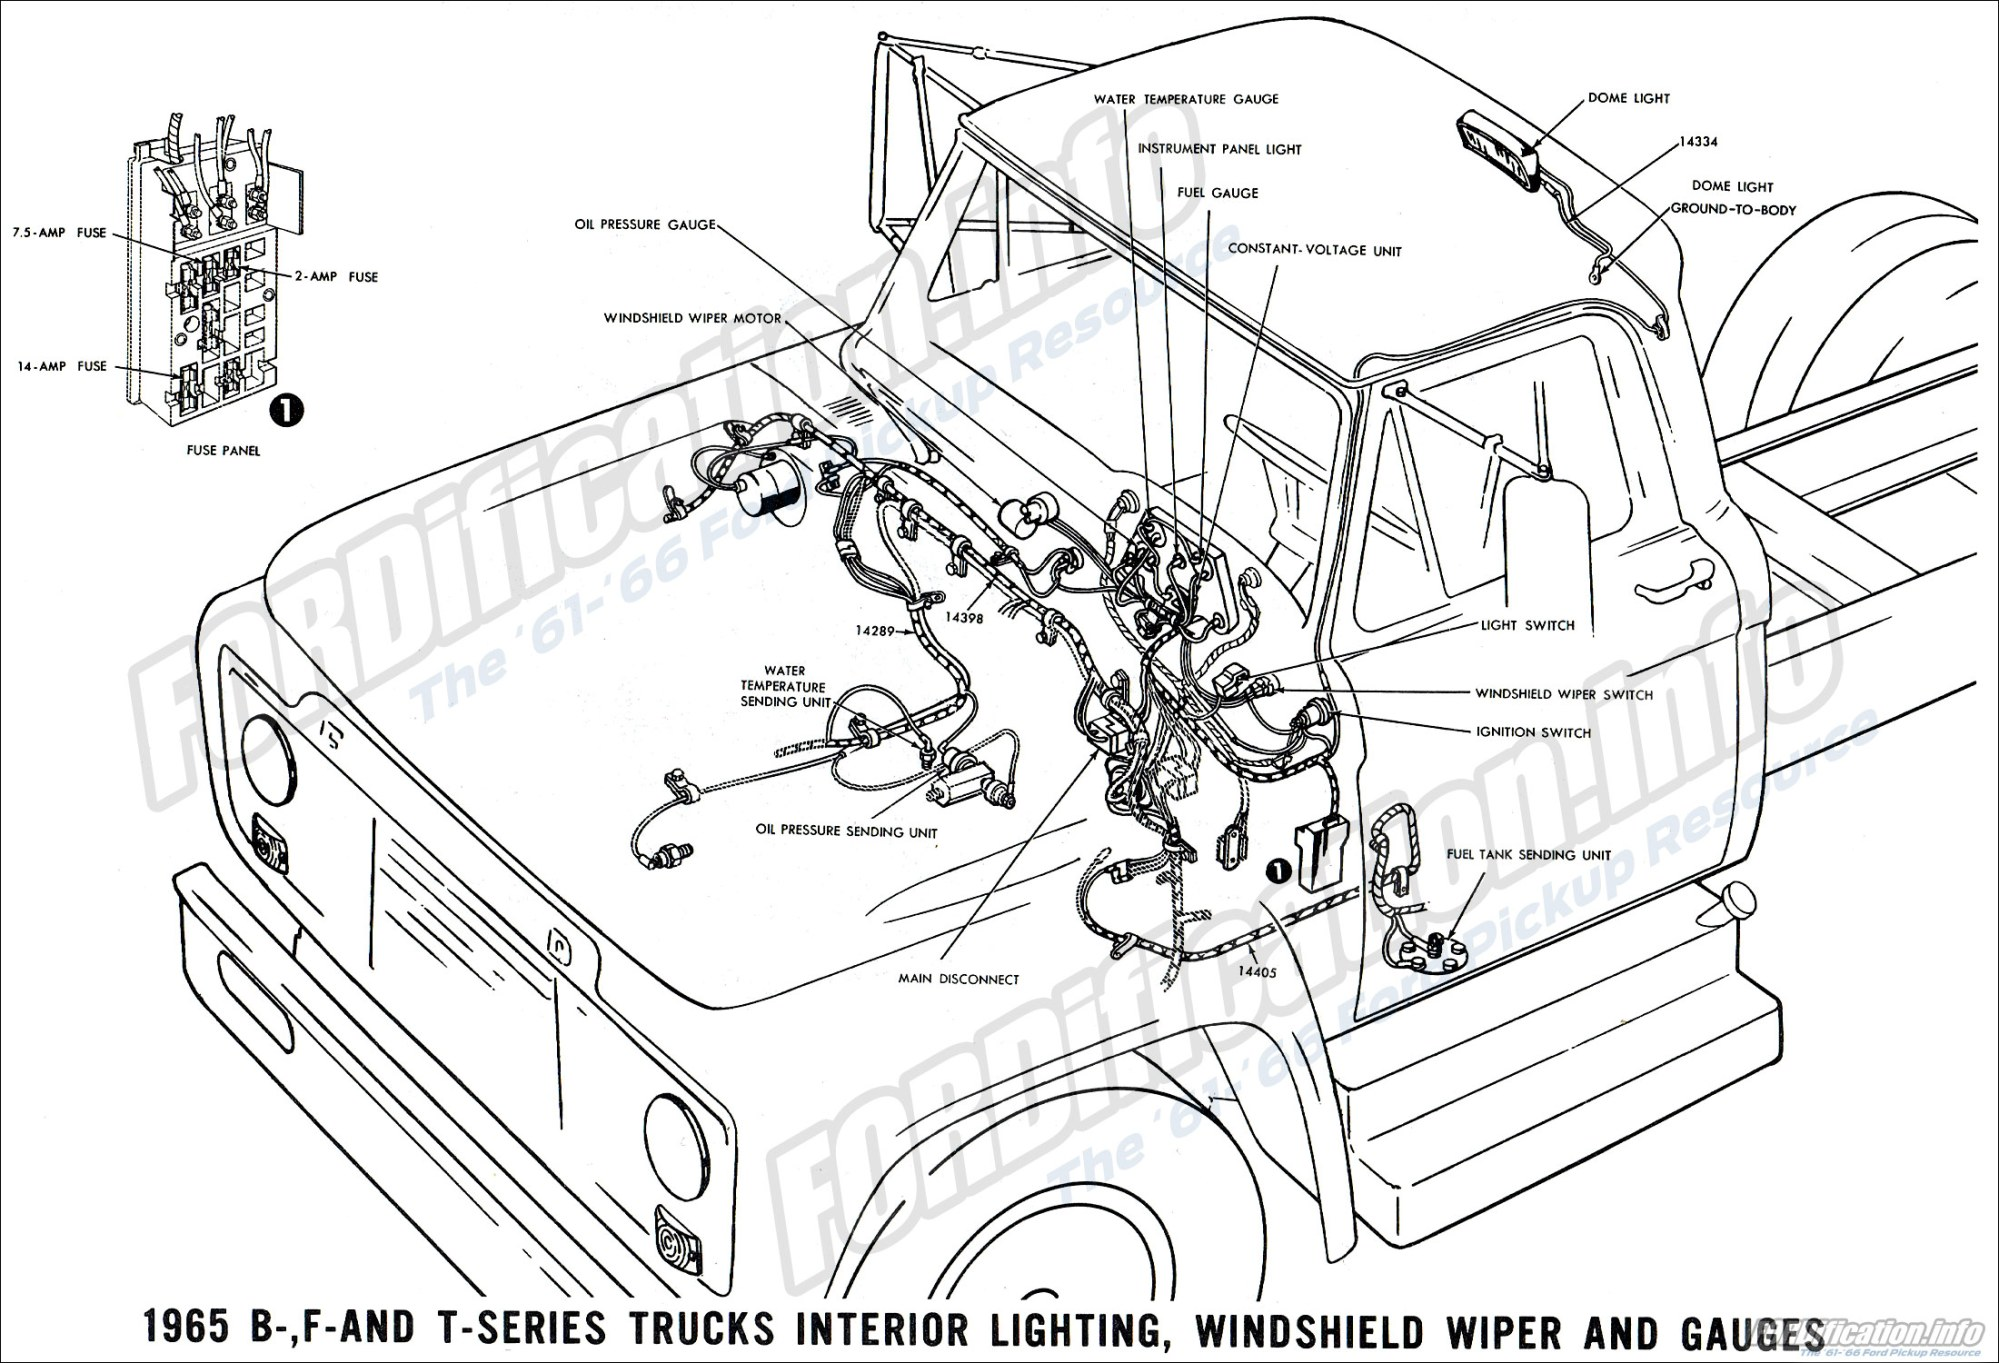 hight resolution of 1965 ford f100 wiring diagram wiring diagram sheet 1965 ford truck wiring diagrams fordification info the